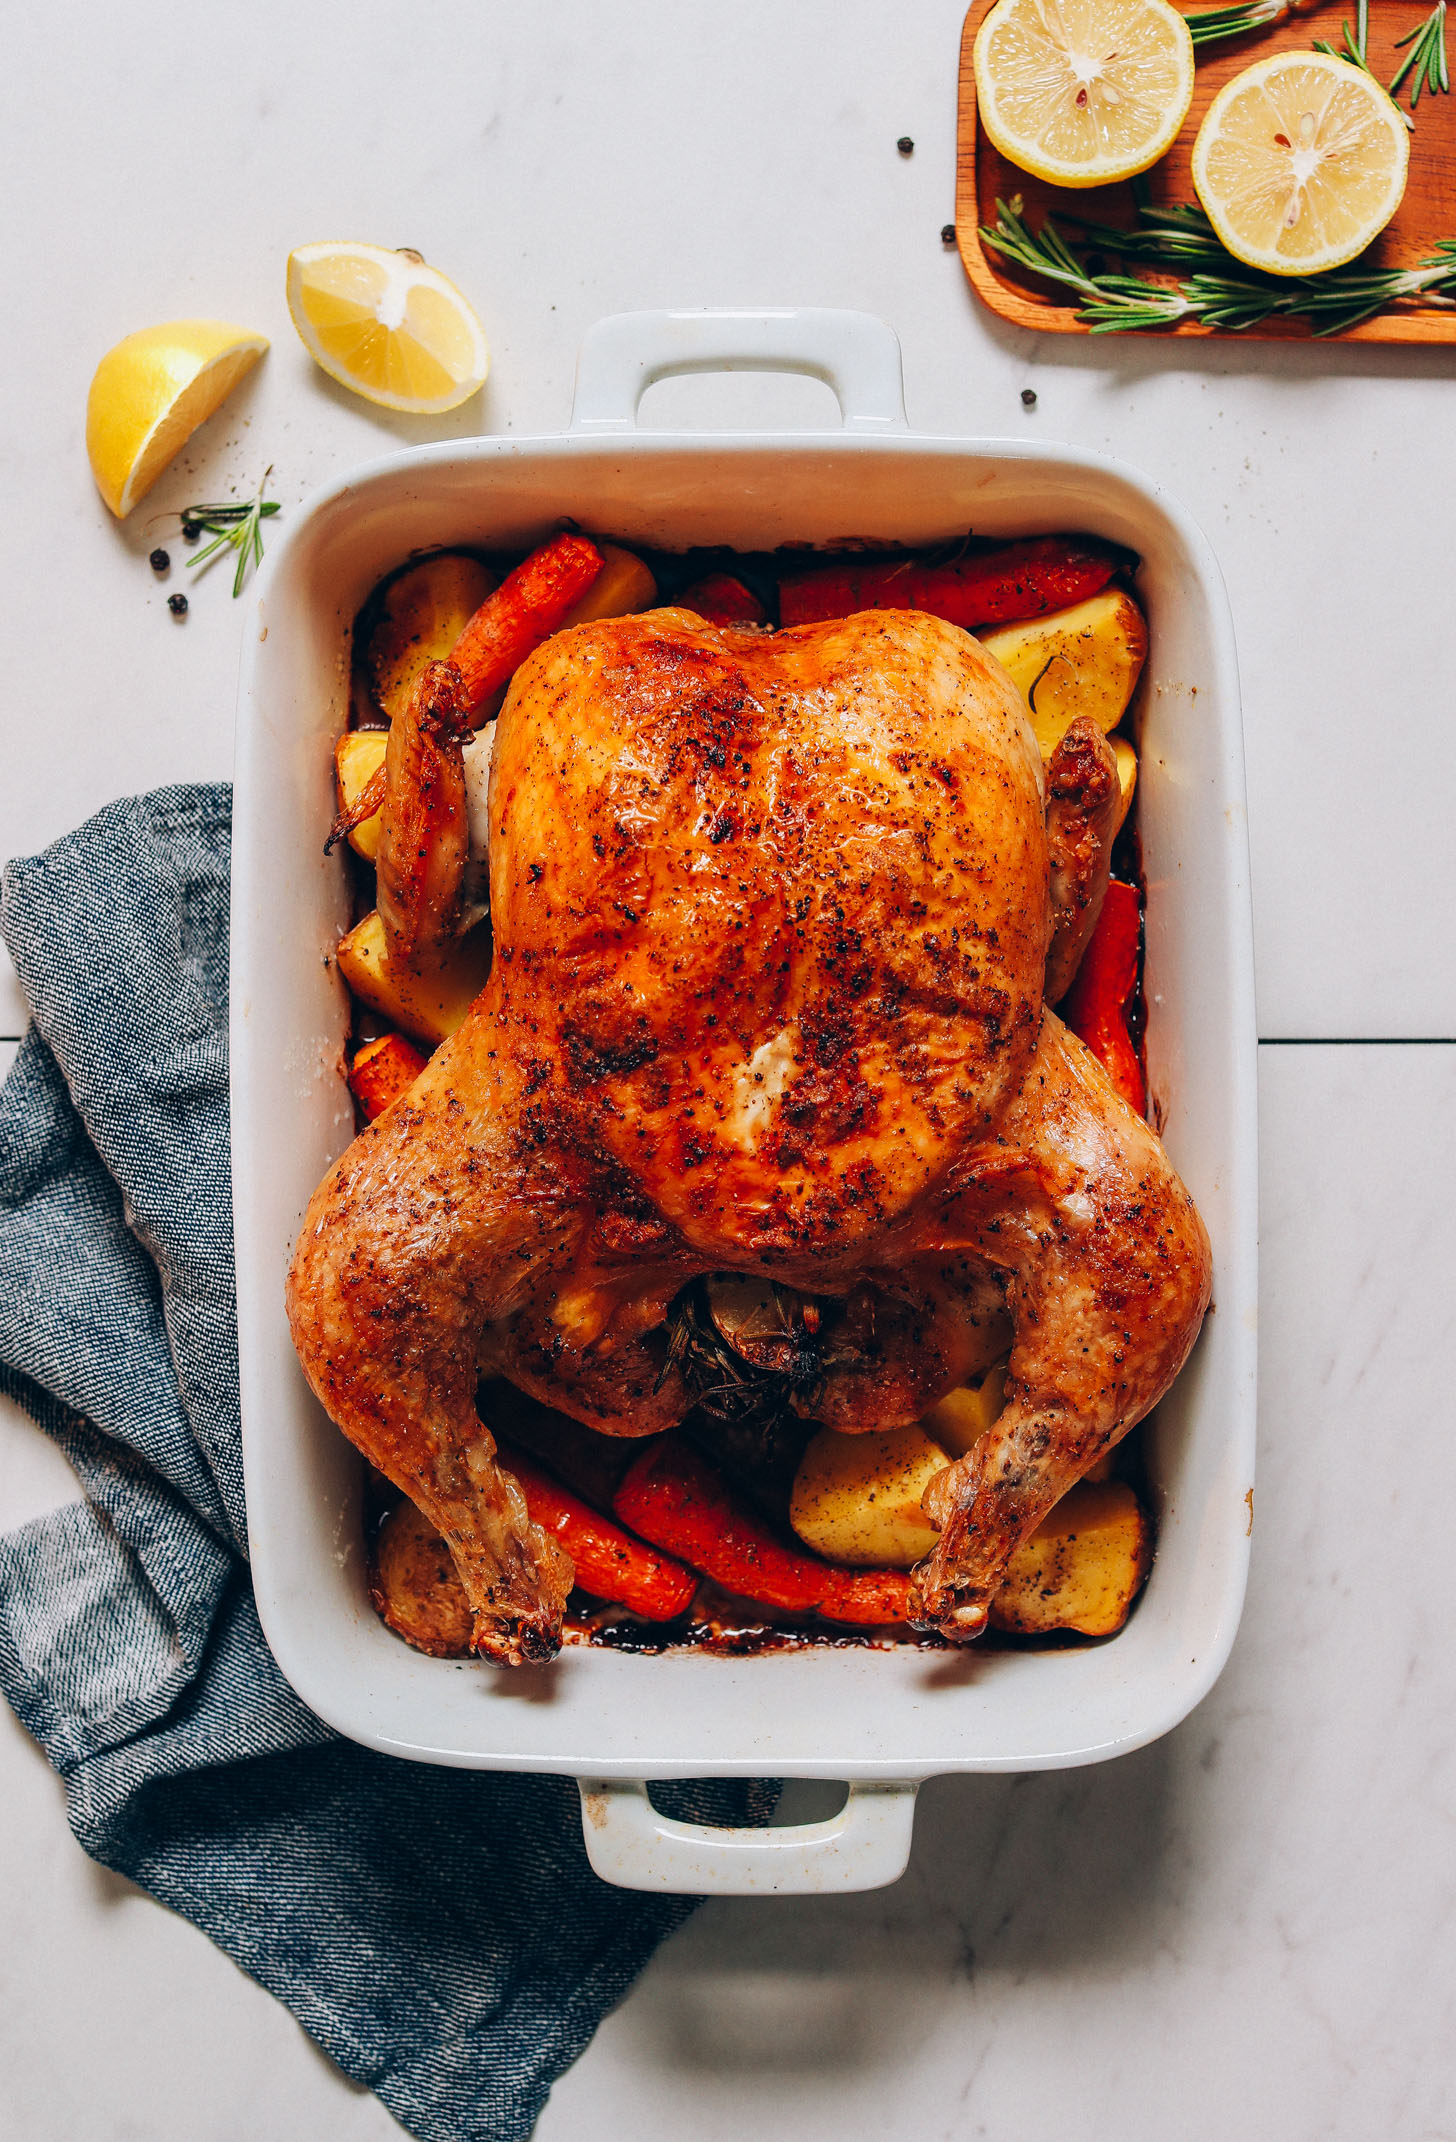 Perfectly cooked Oven Roasted Chicken in a ceramic dish